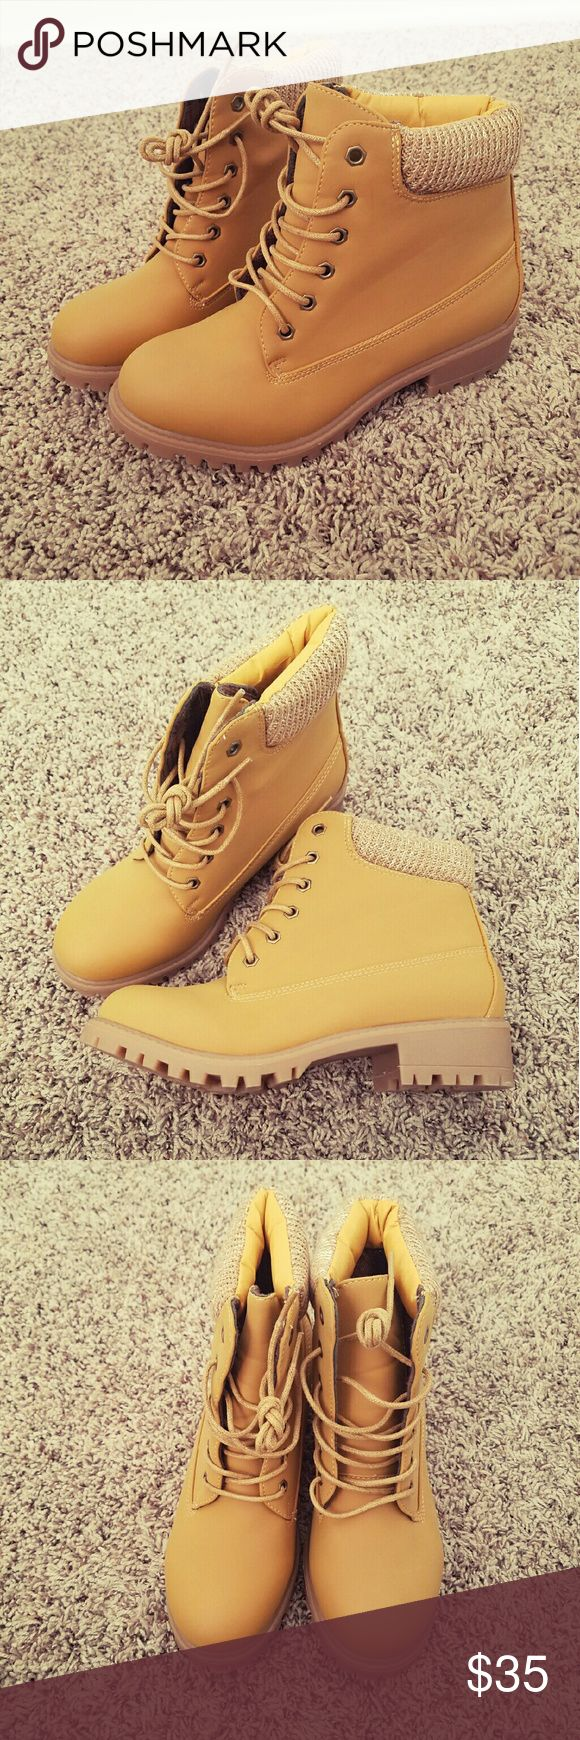 Tan Boots Adorable Timberland style boots. Brand new with box. Boutique  Shoes Ankle Boots & Booties